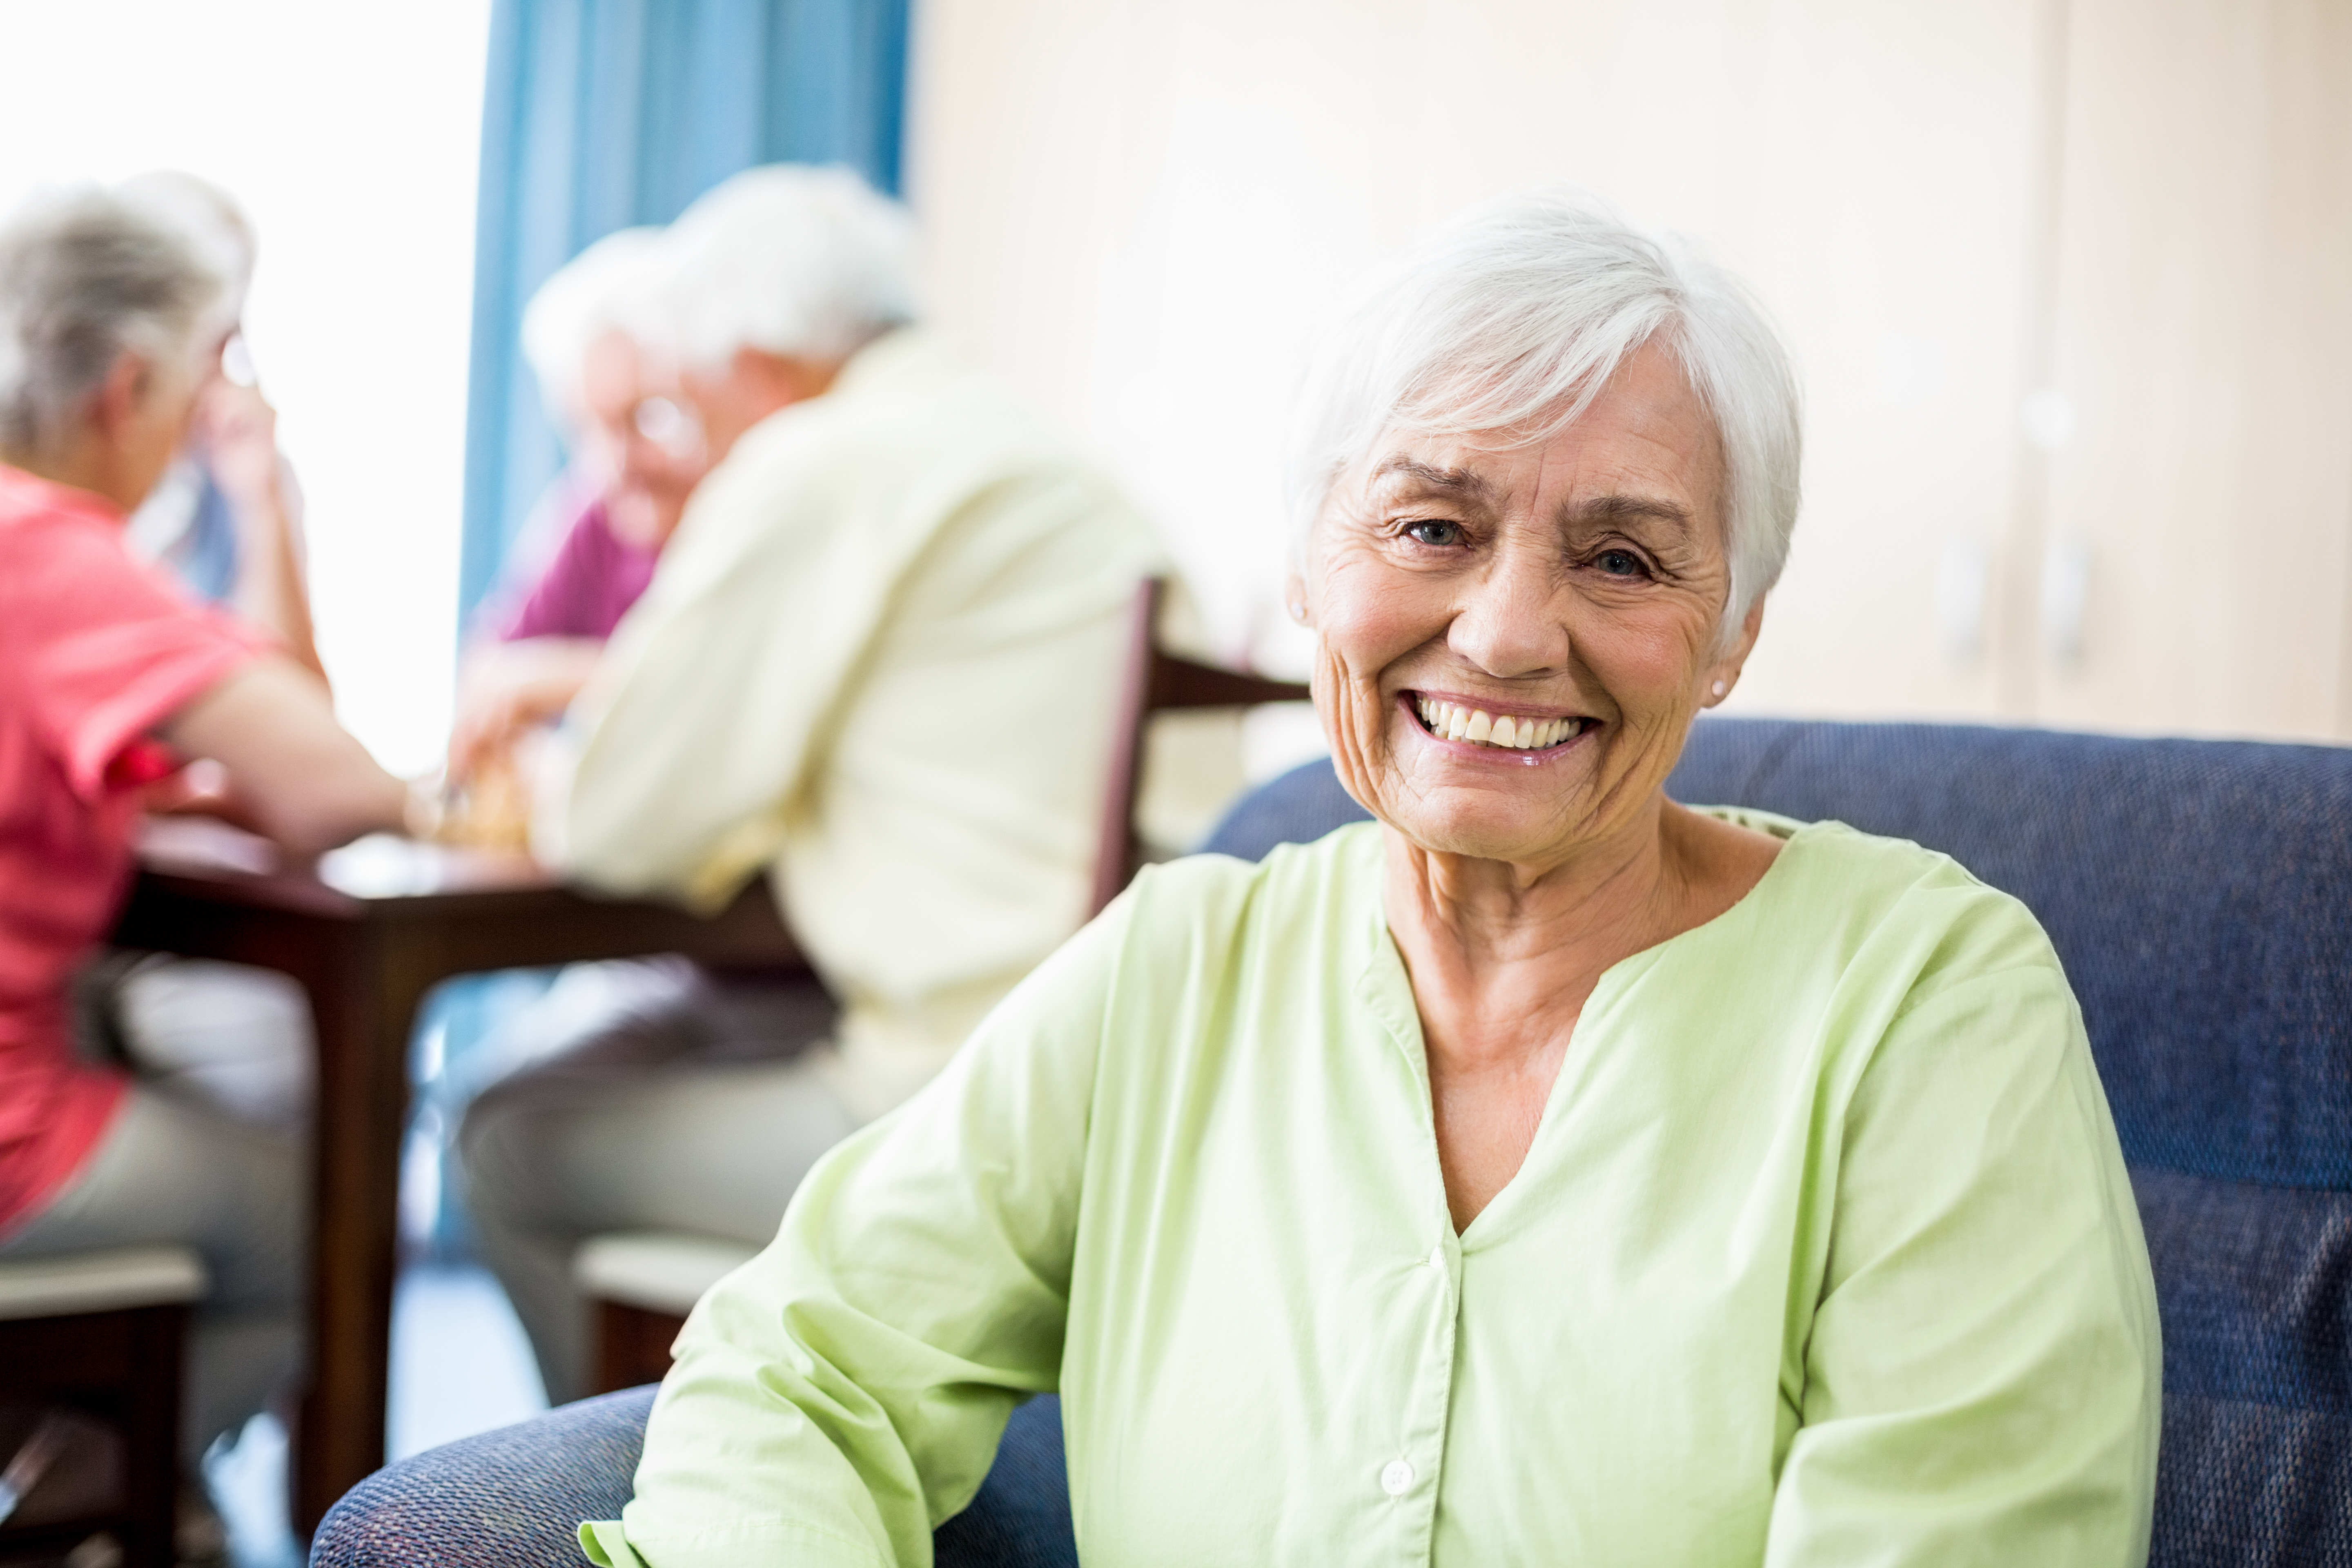 senior woman seated looking at viewer with other aged people in the backgroubd